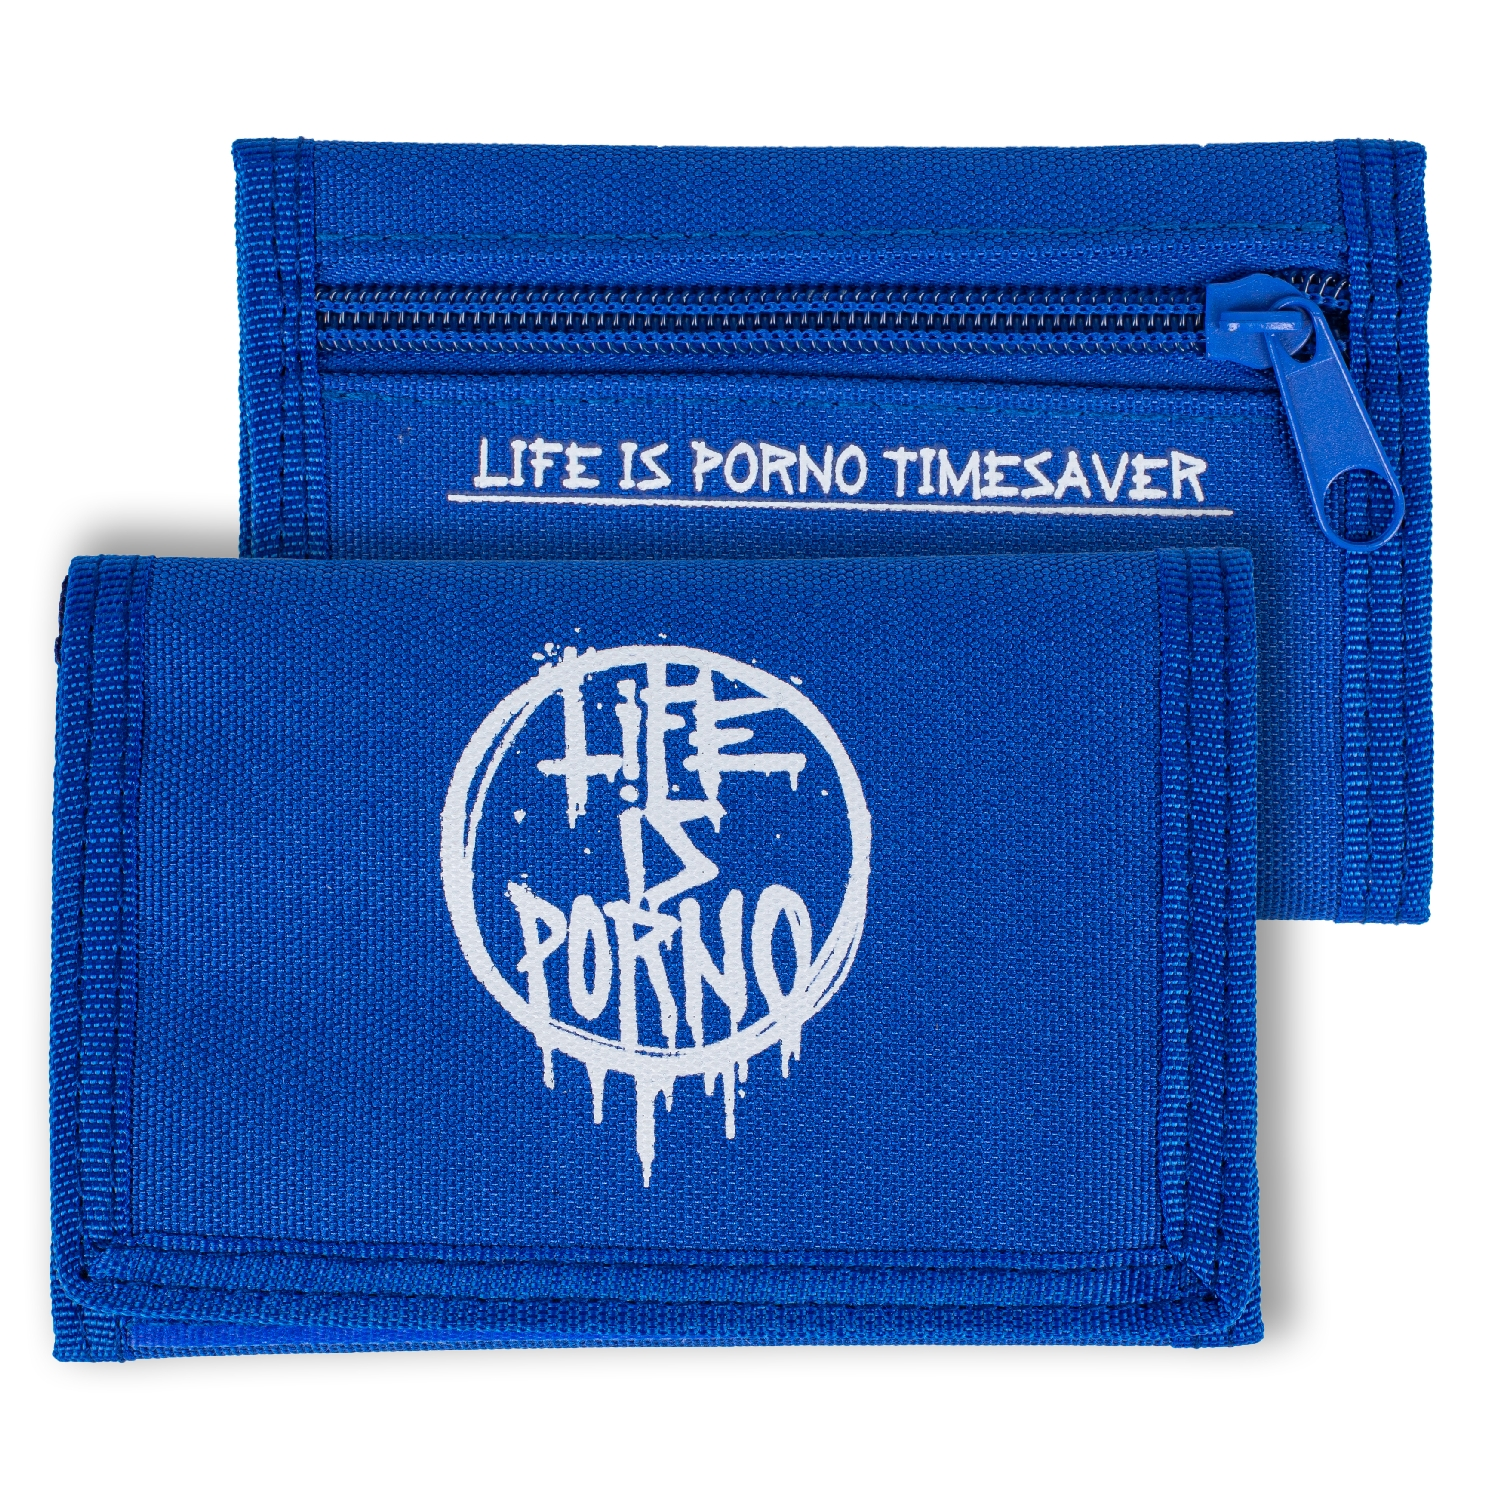 TIMESAVER WALLET BLUE